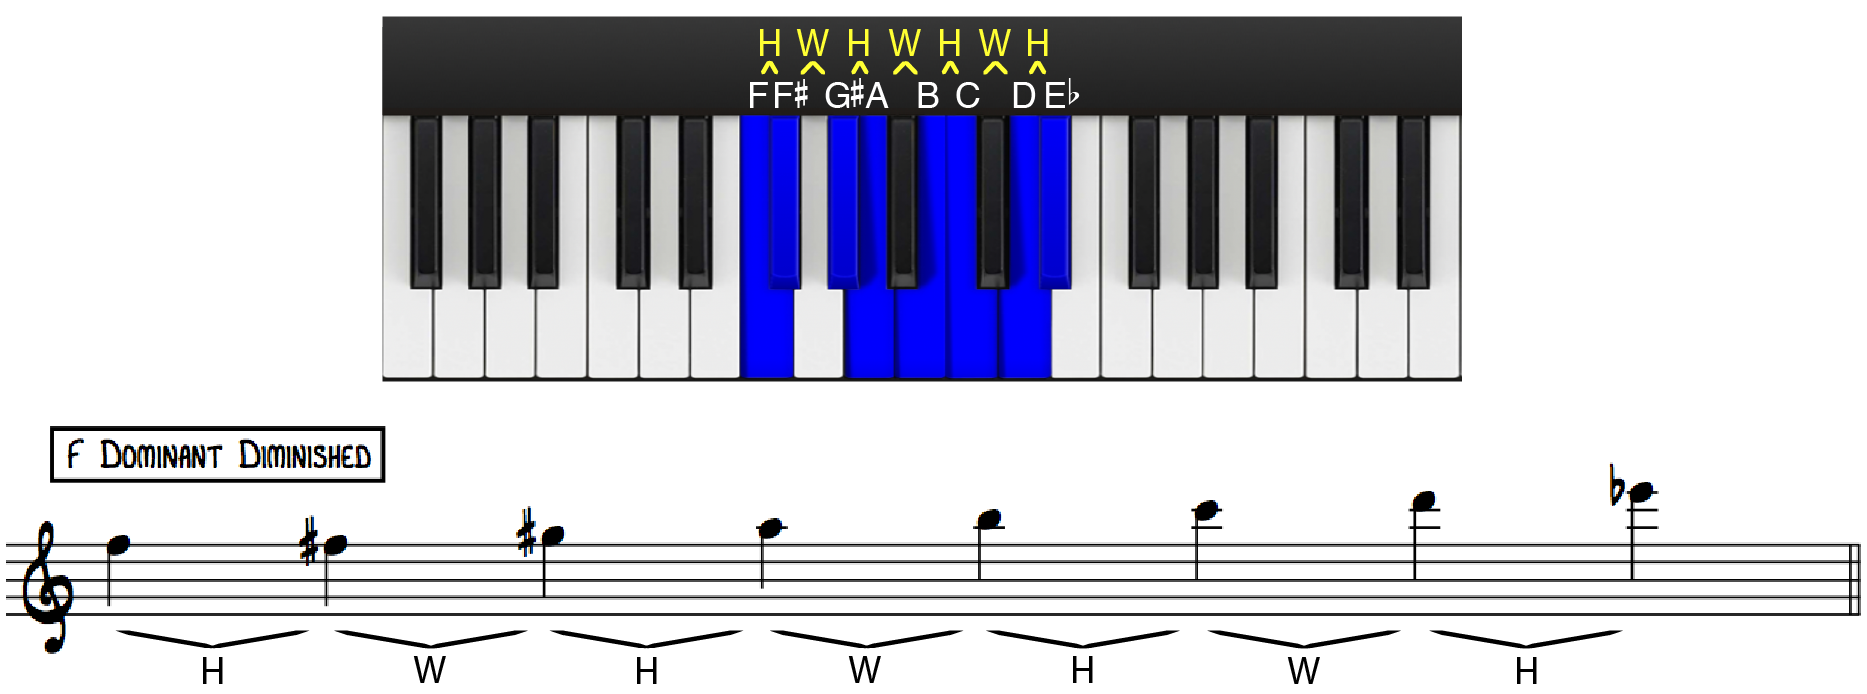 F Dominant Diminished Scale Construction